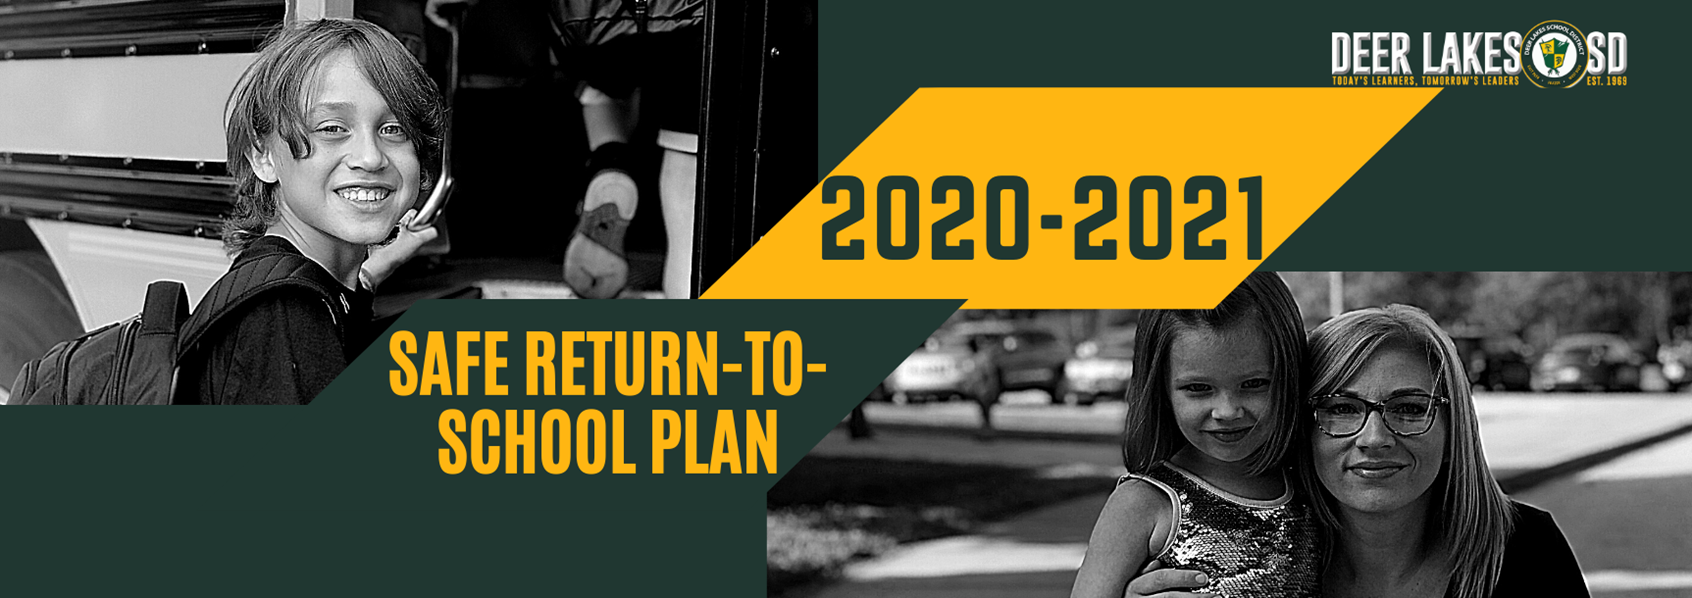 School Board to consider district's new Safe Back-to-School Plan